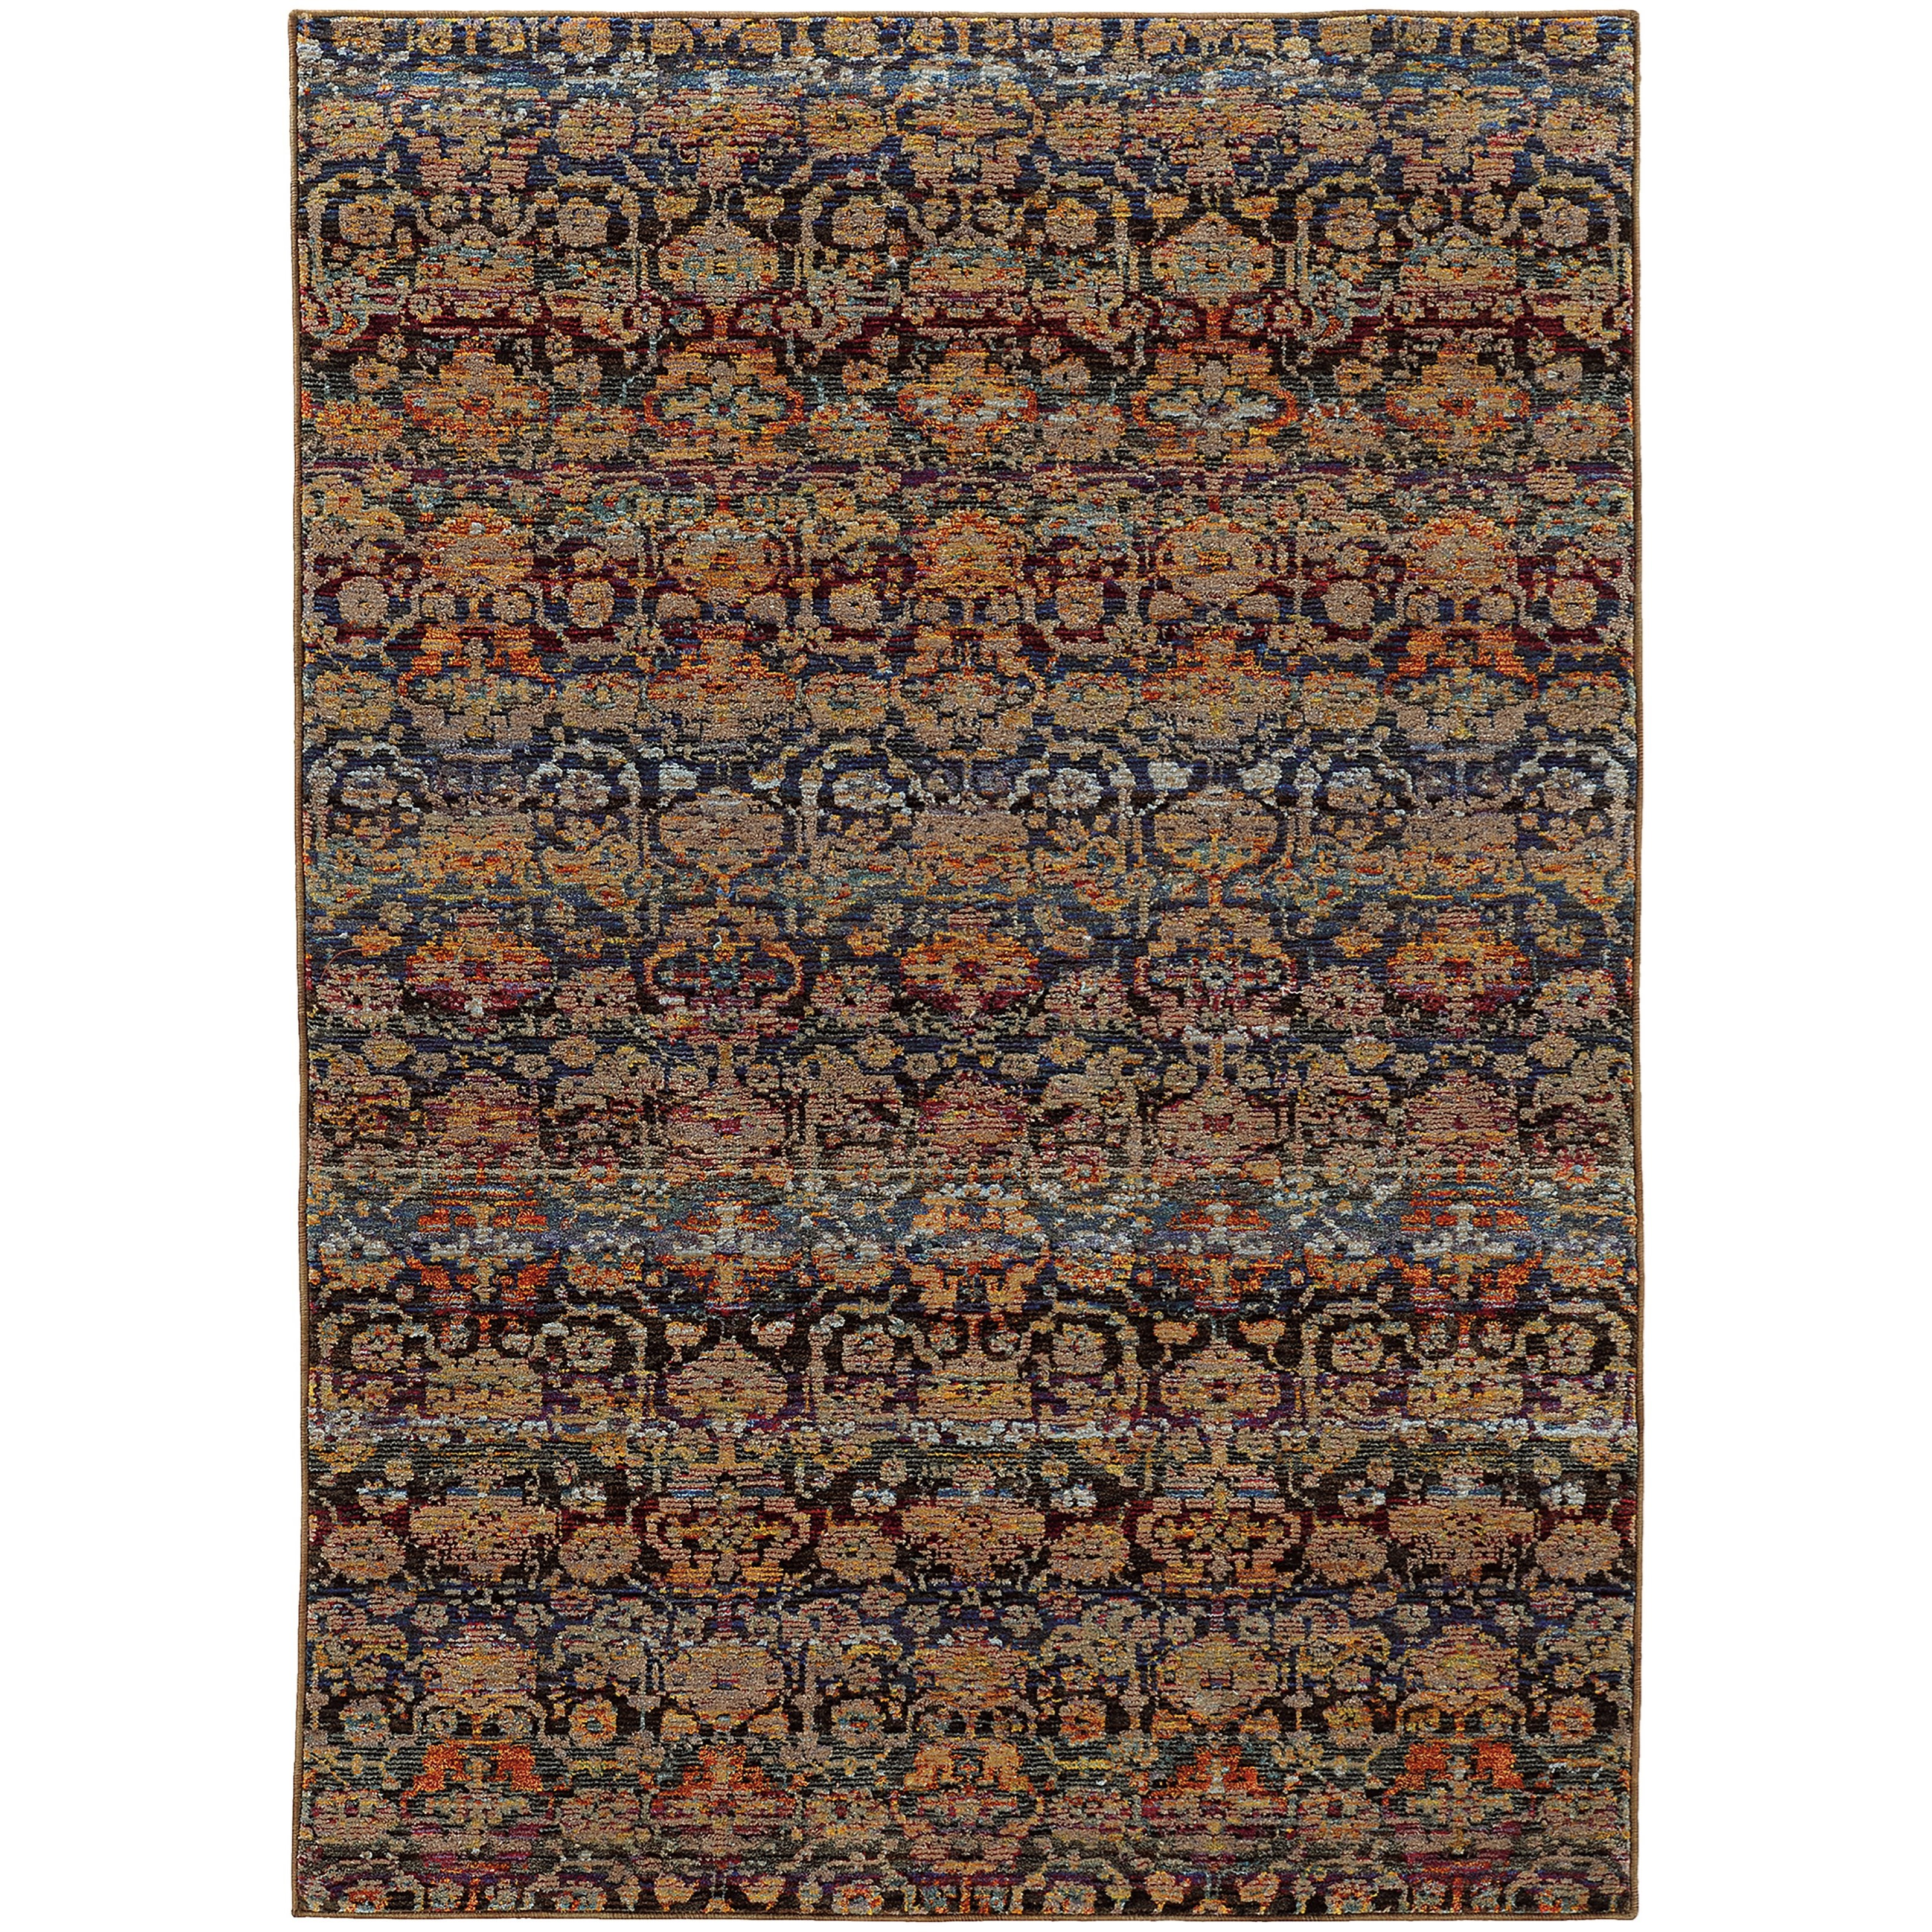 """Andorra 3' 3"""" X  5' 2"""" Casual Multi/ Blue Rectangle  by Oriental Weavers at Steger's Furniture"""